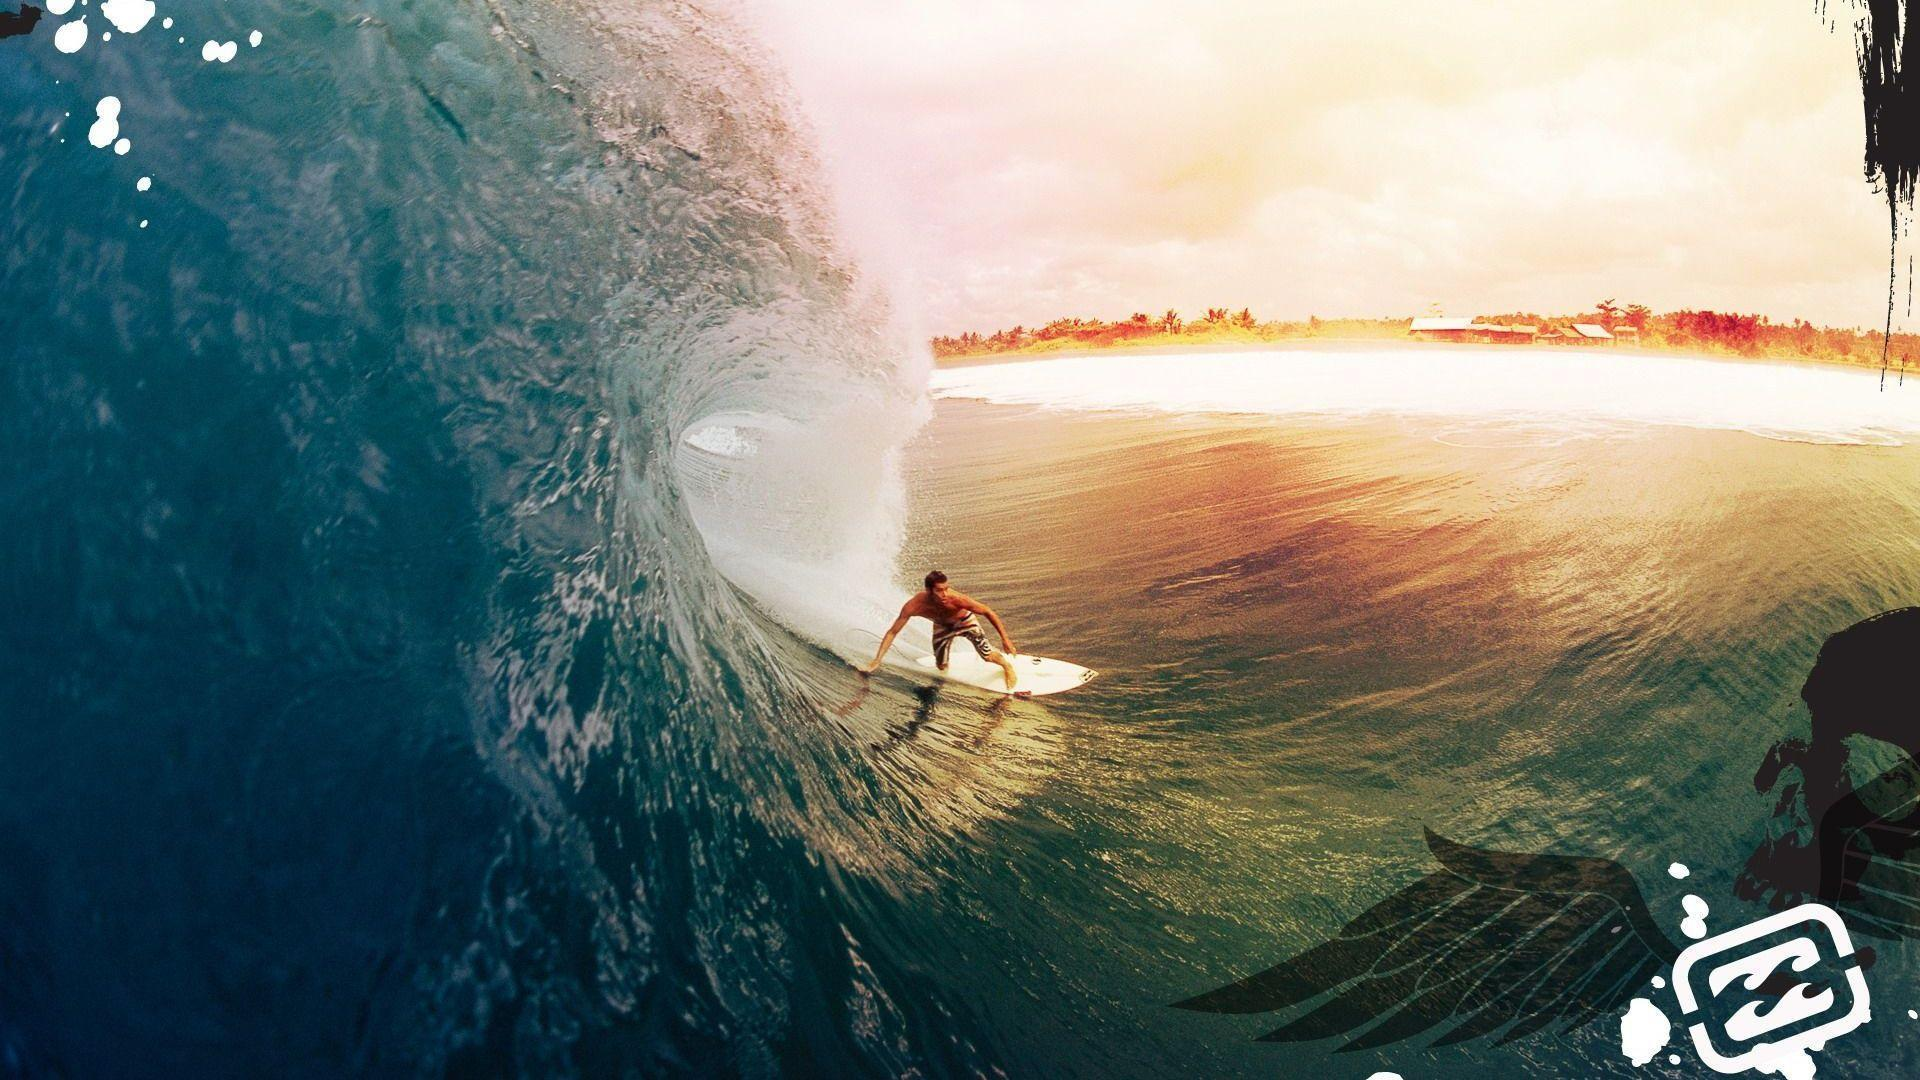 nike surf wallpapers - wallpaper cave